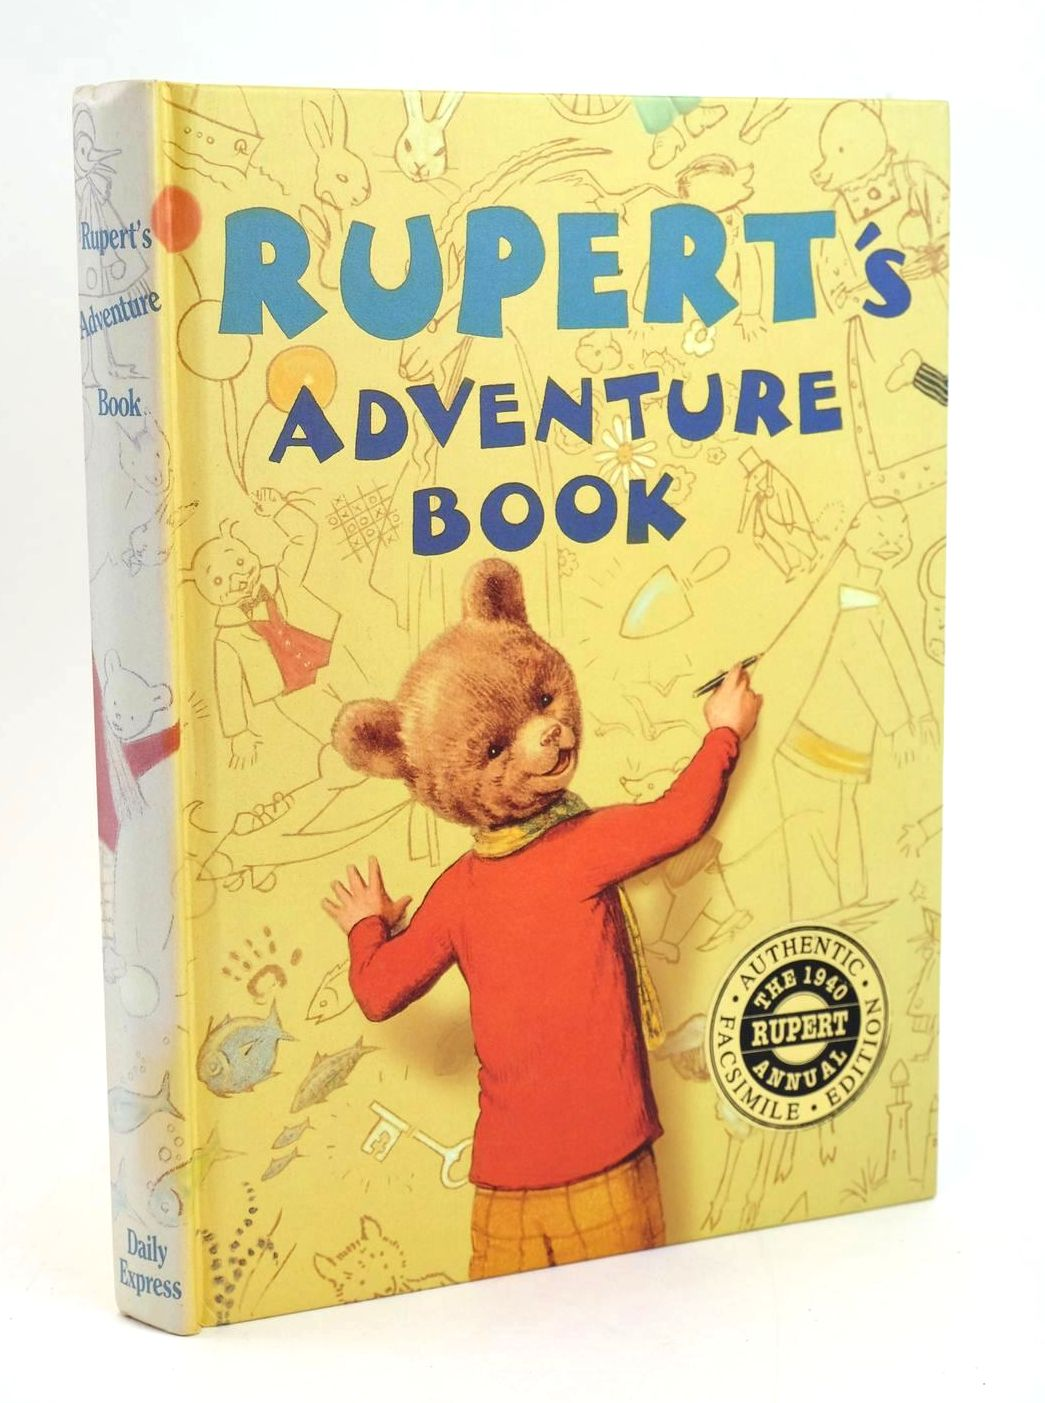 Photo of RUPERT ANNUAL 1940 (FACSIMILE) - RUPERT'S ADVENTURE BOOK written by Bestall, Alfred illustrated by Bestall, Alfred published by Annual Concepts Limited (STOCK CODE: 1319209)  for sale by Stella & Rose's Books